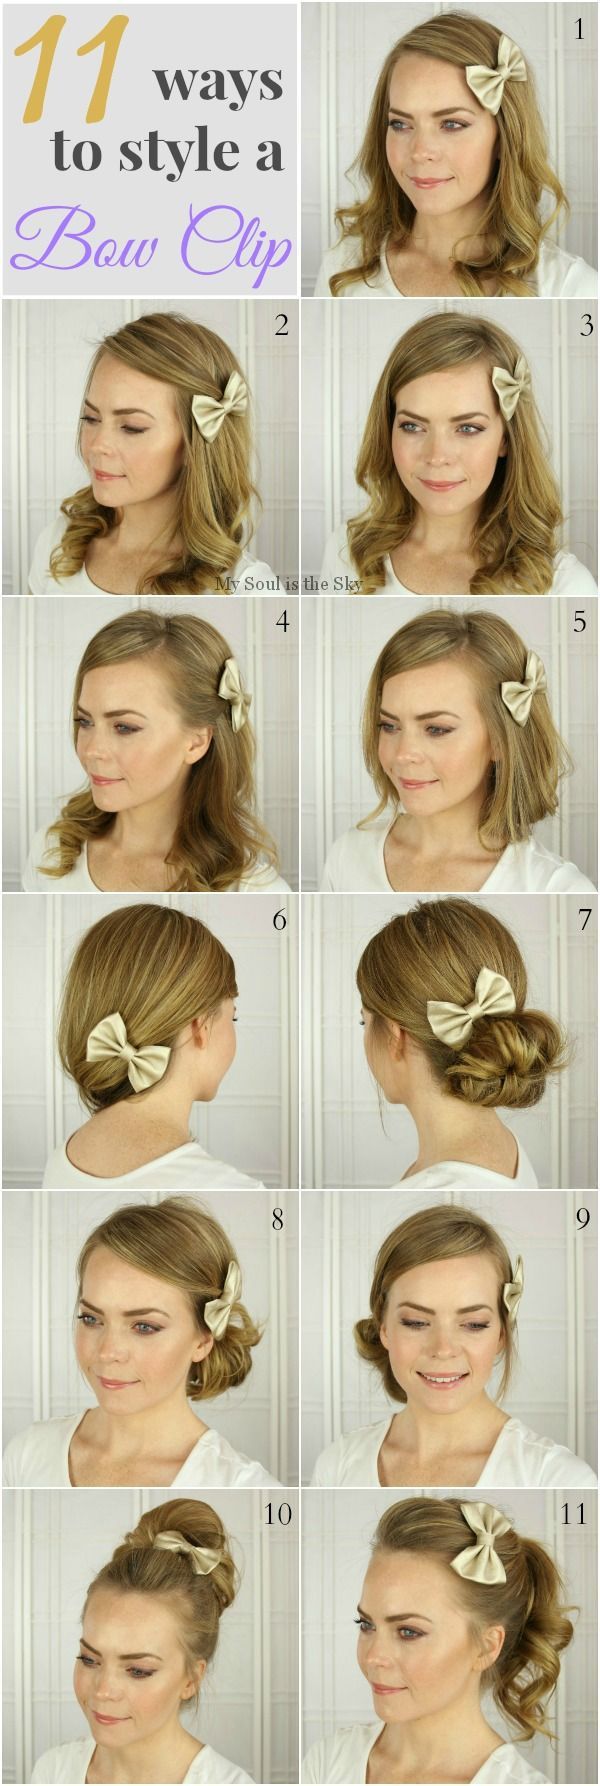 Easy Hairstyles with a Hair AccessoryChic Low Bun   Braided Headband Tutorial with Latest-Hairstyles.comOut of the Blue